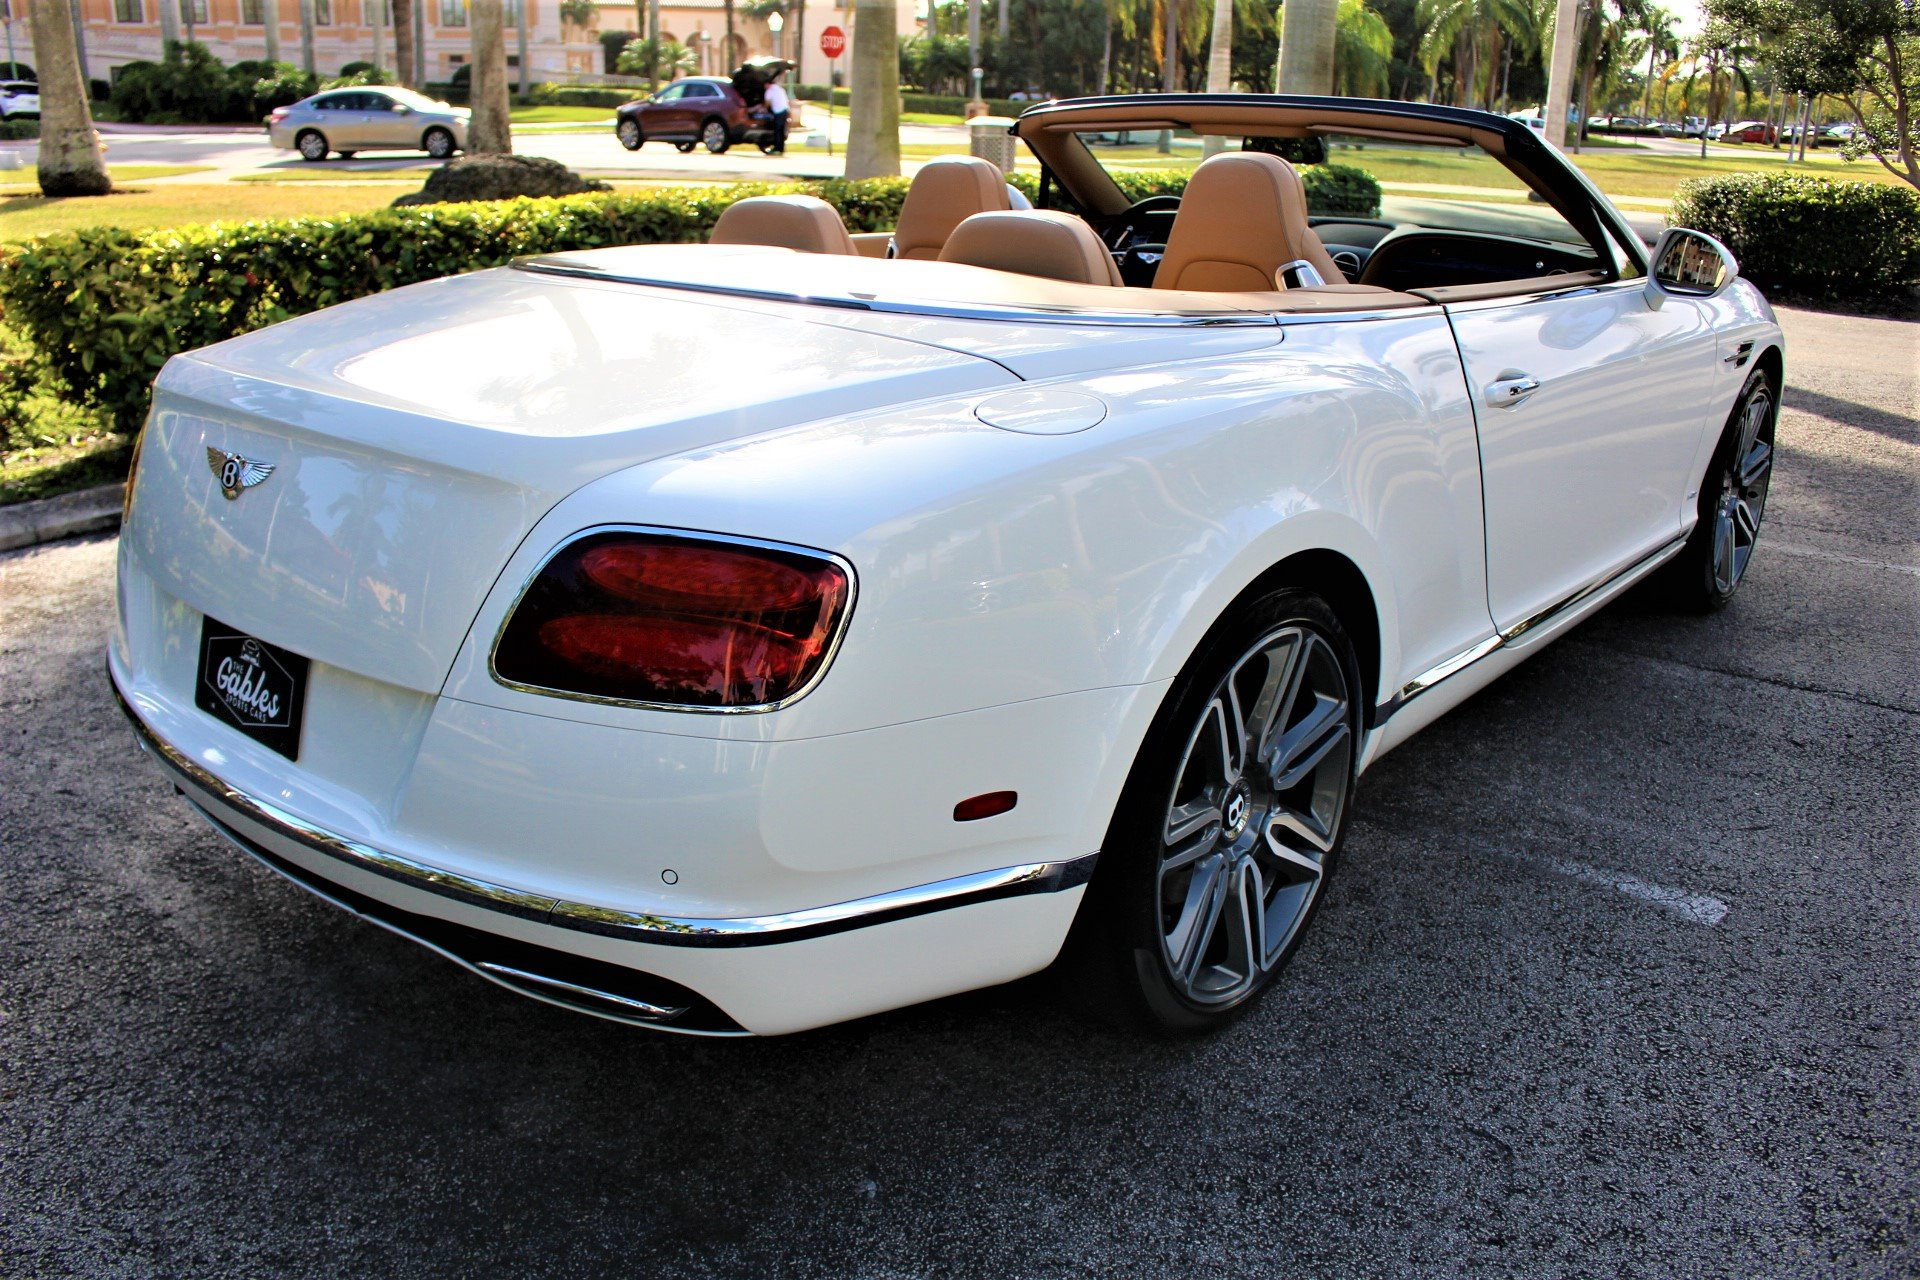 Used 2016 Bentley Continental GT for sale Sold at The Gables Sports Cars in Miami FL 33146 3